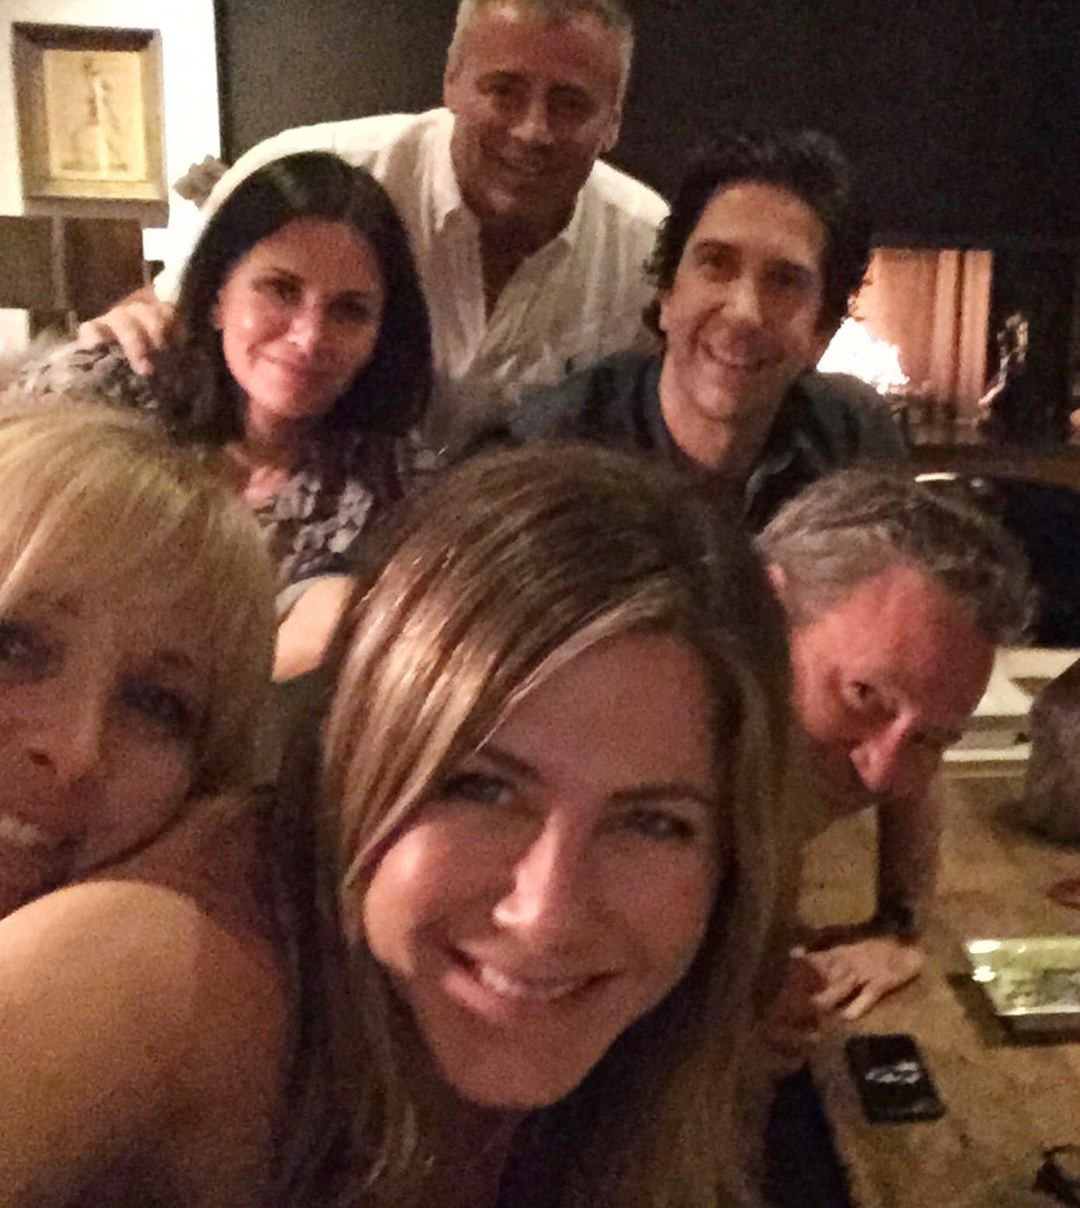 Friends Reunion - Jennifer Aniston Instagram Debut Courteney Cox, Lisa Kudrow, Jennifer Aniston, Matthew Perry, Matt LeBlanc, David Schwimmer